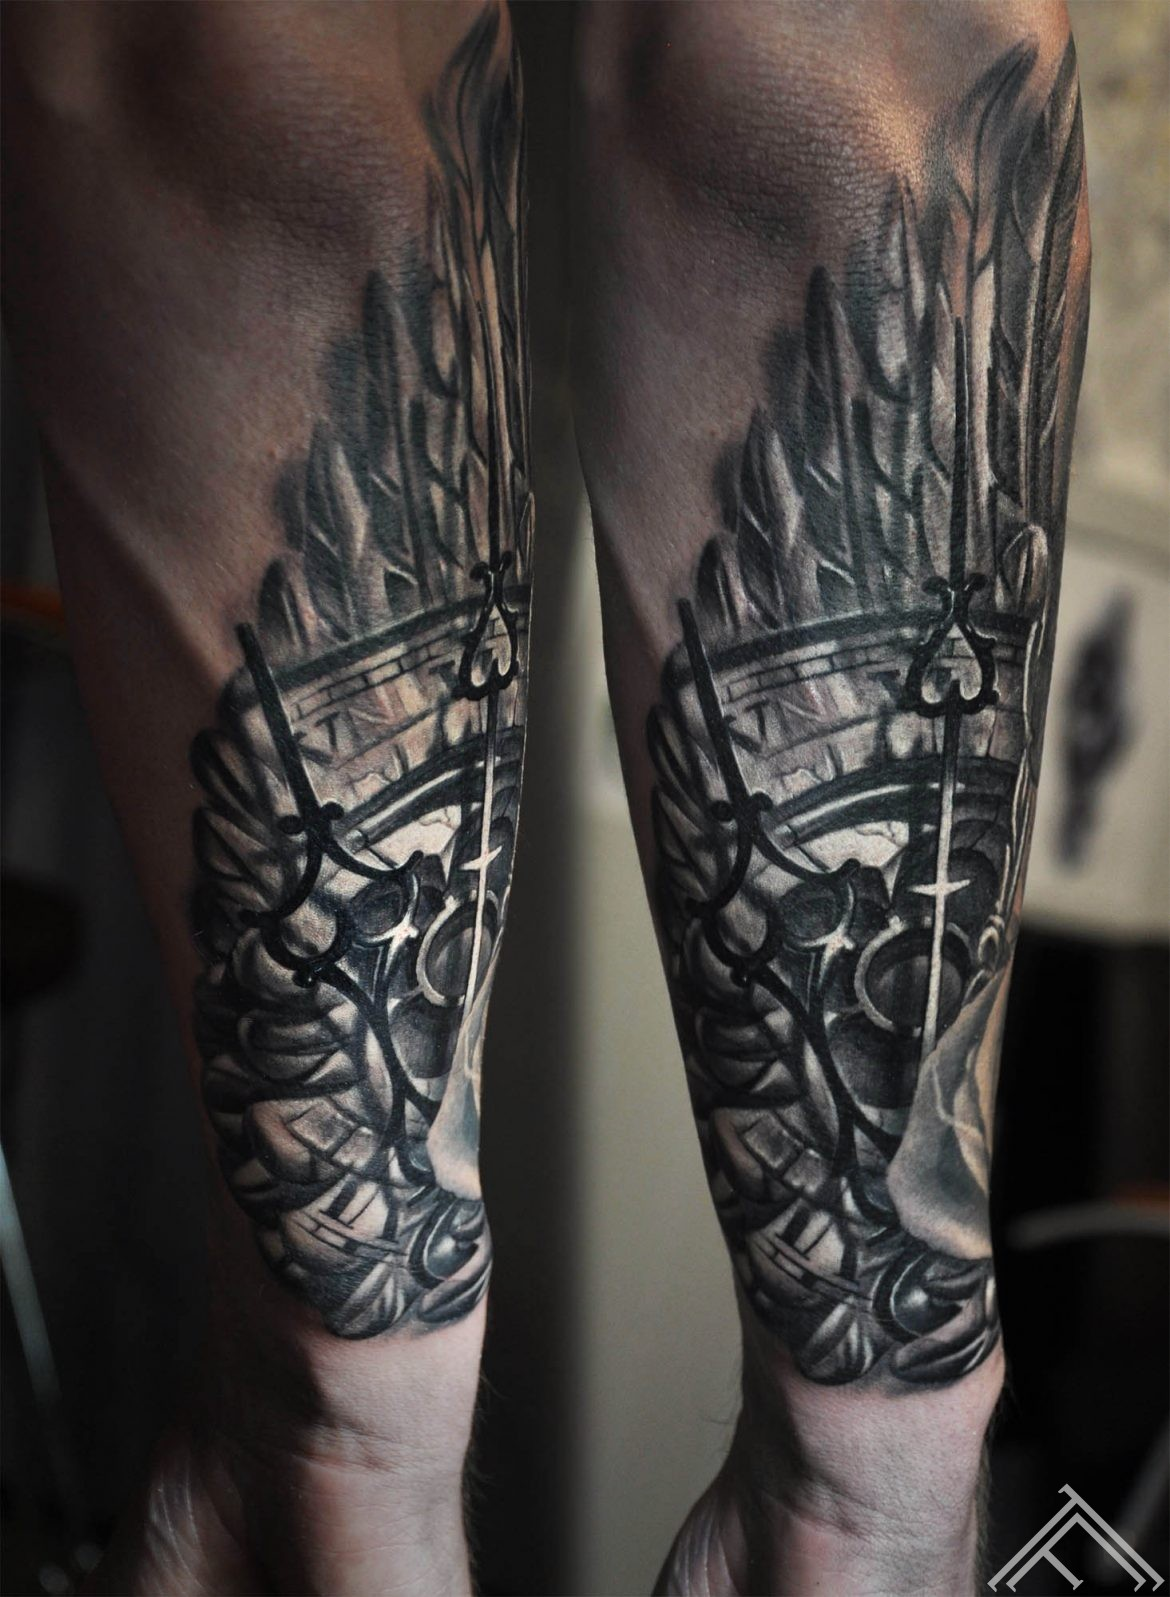 baroque_round_window_feather_wing_clock_arms_marispavlo_tattoofrequency